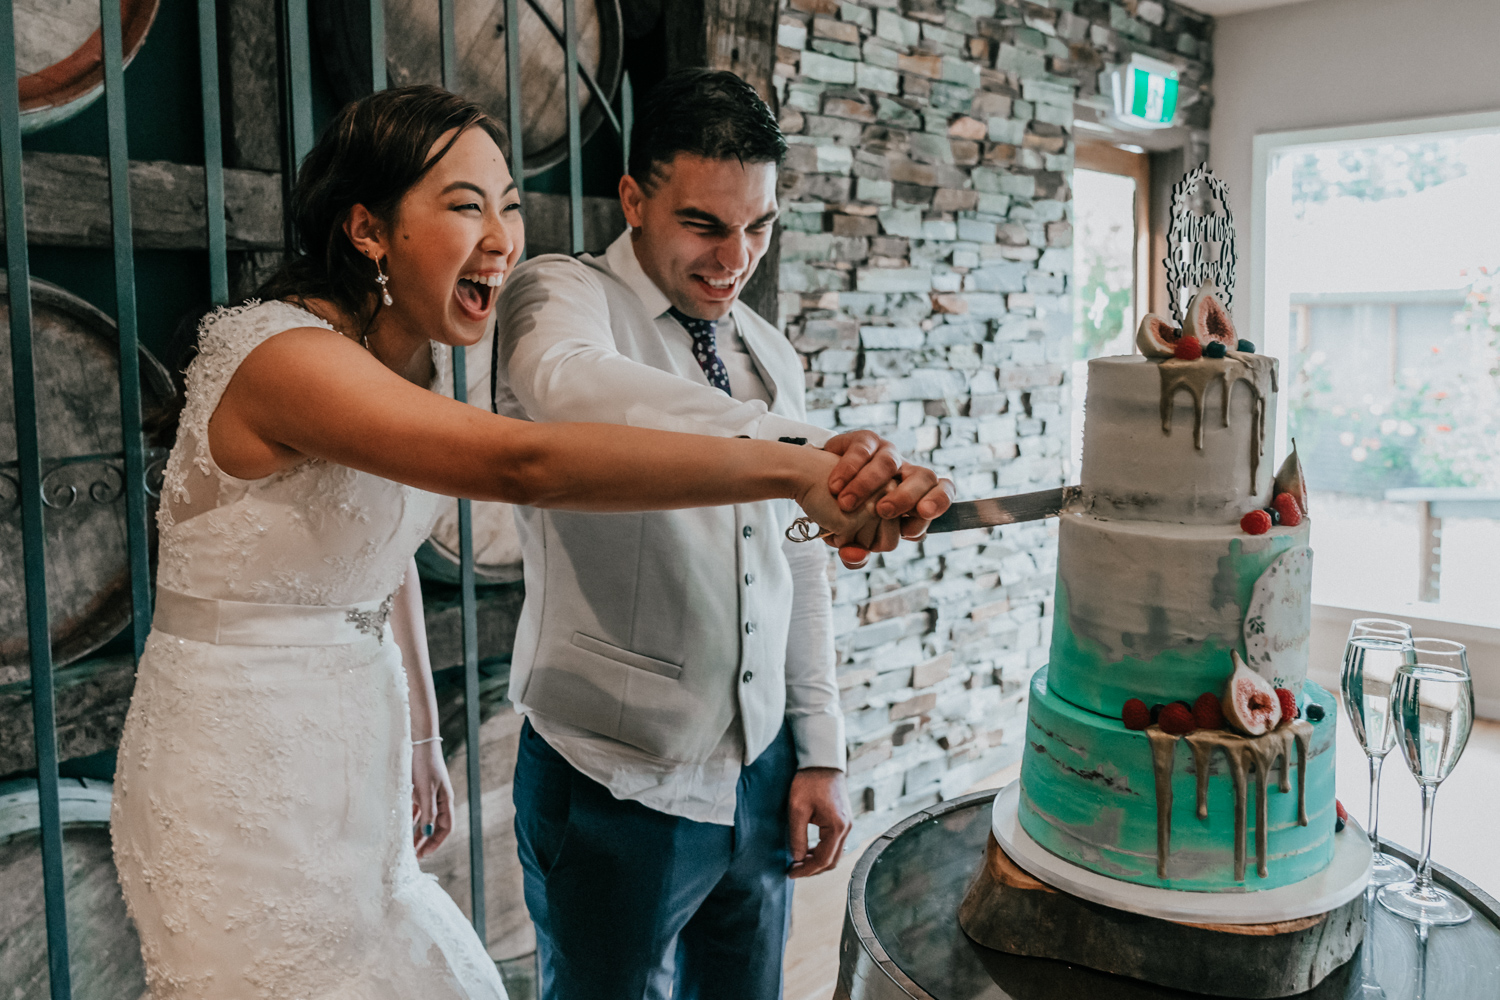 Melbourne bride groom cutting wedding cake by Slice Cakes